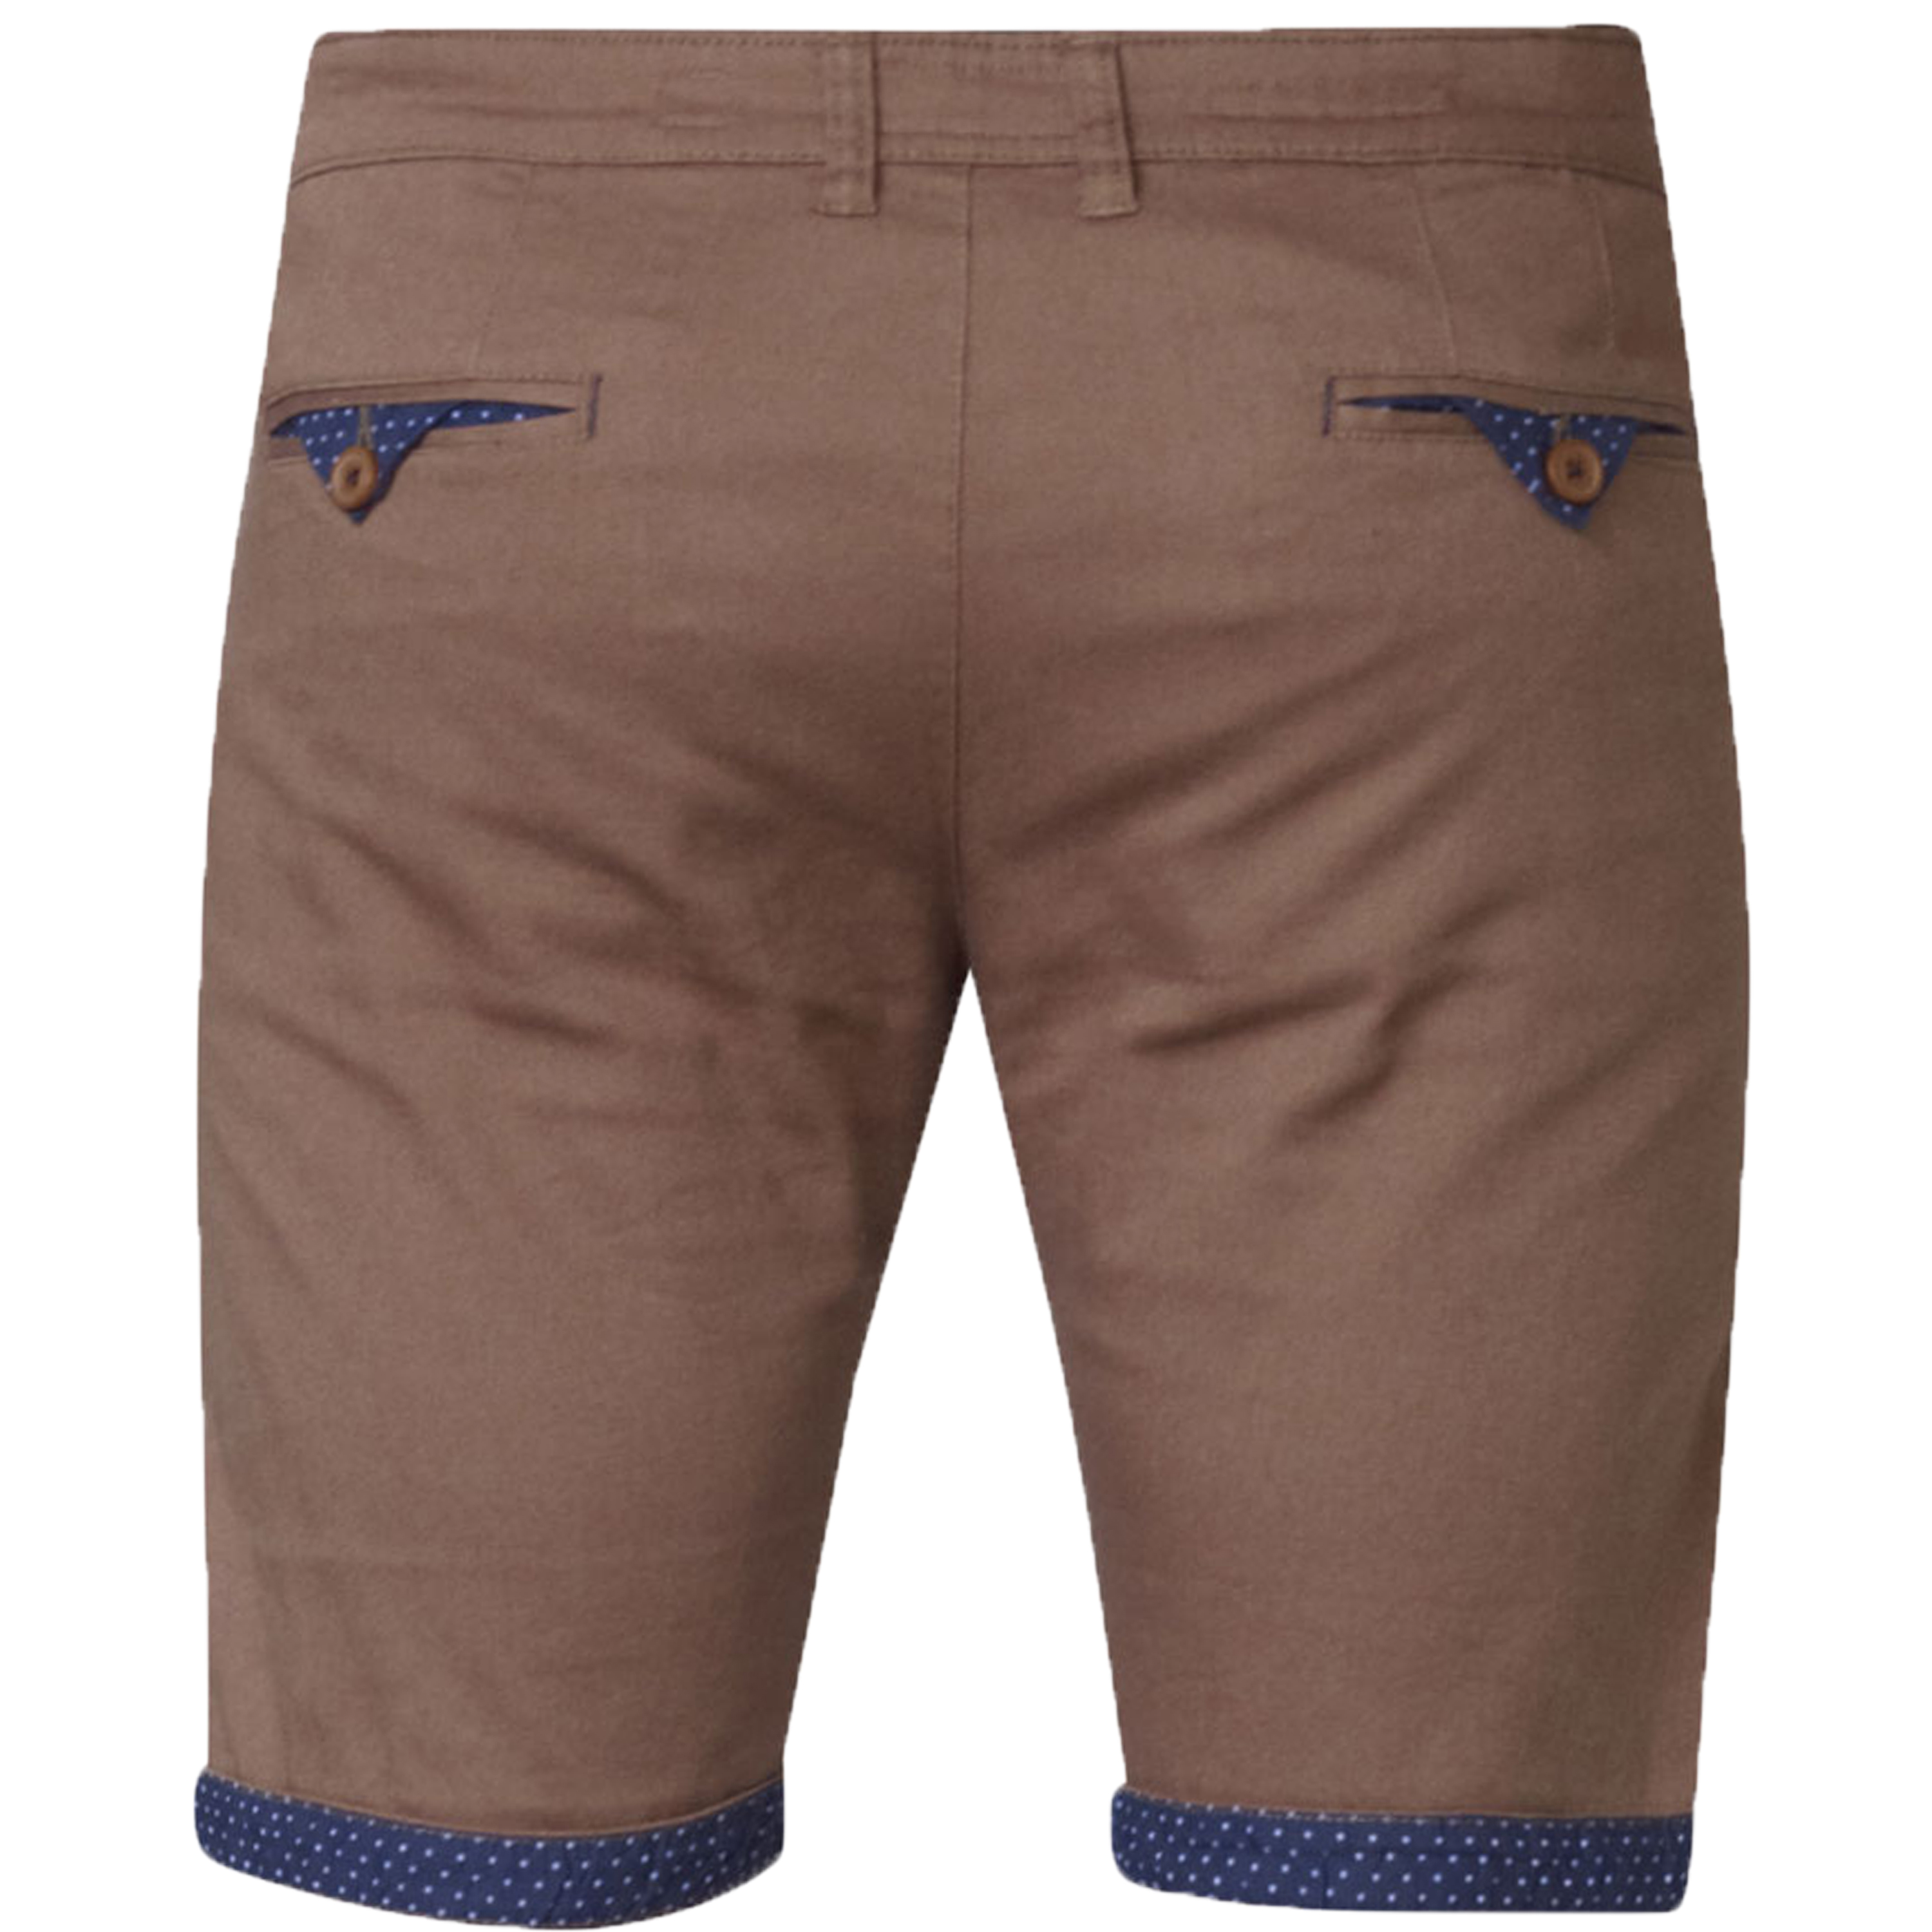 Mens-Chino-Shorts-D555-Duke-Big-King-Size-Roll-Up-Knee-Length-Polka-Pattern-New thumbnail 6